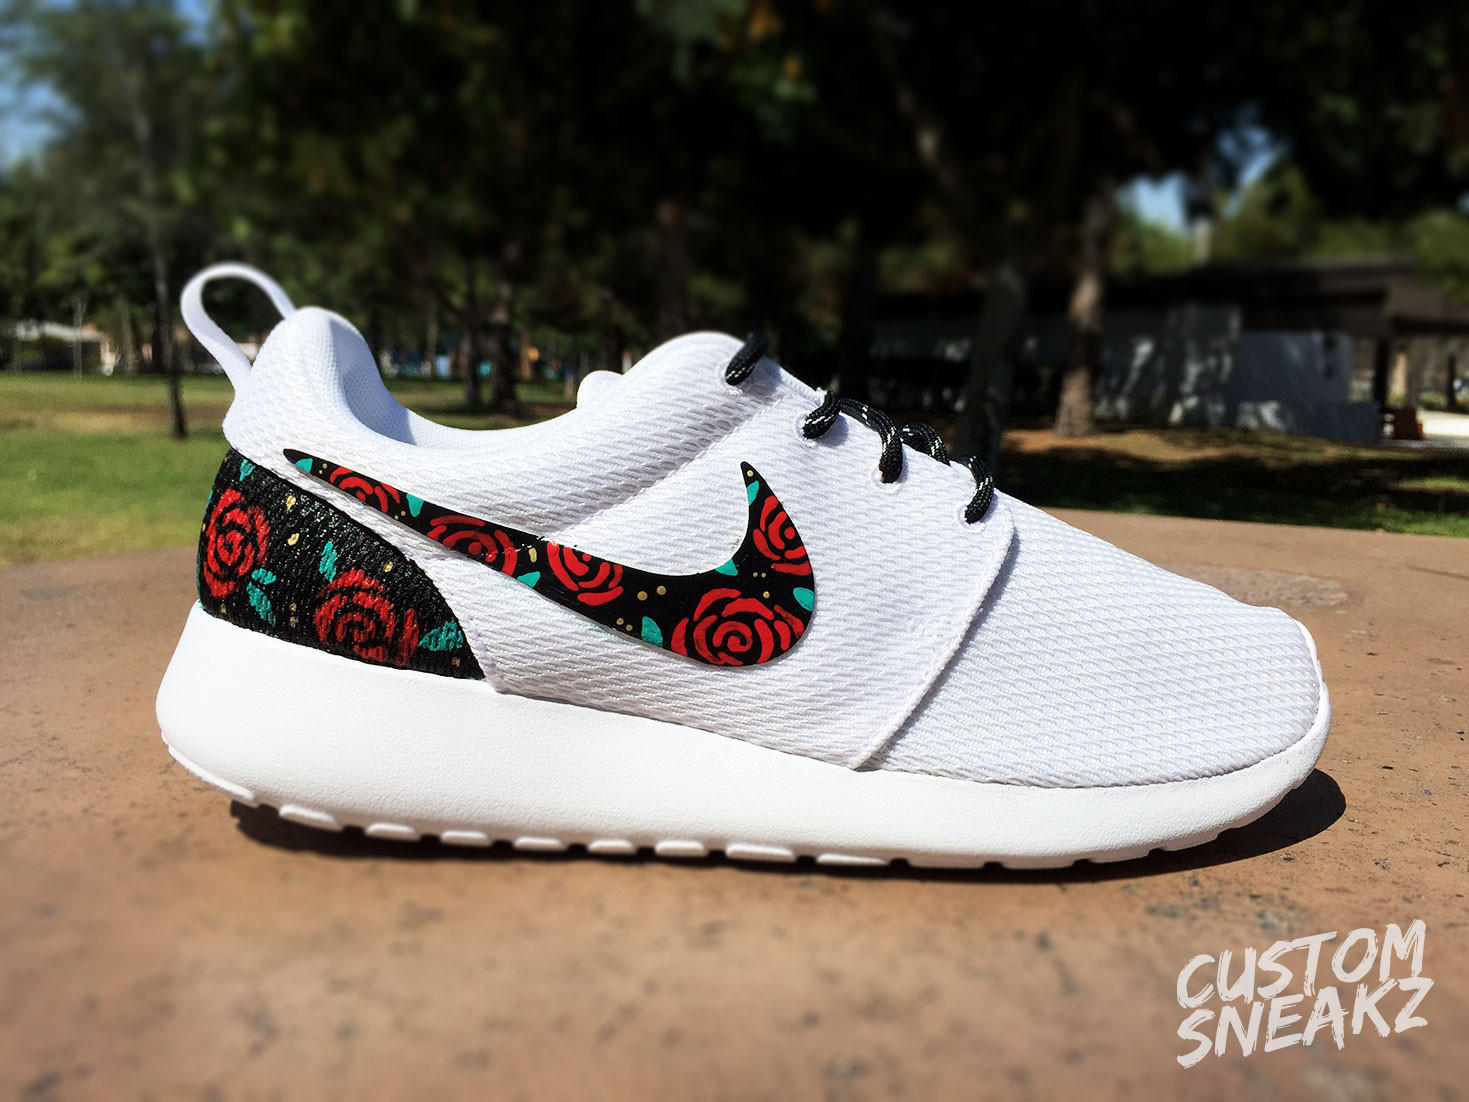 Womens Custom Nike Roshe Run sneakers, Rose Gold design, Red Roses with  teal leaves an